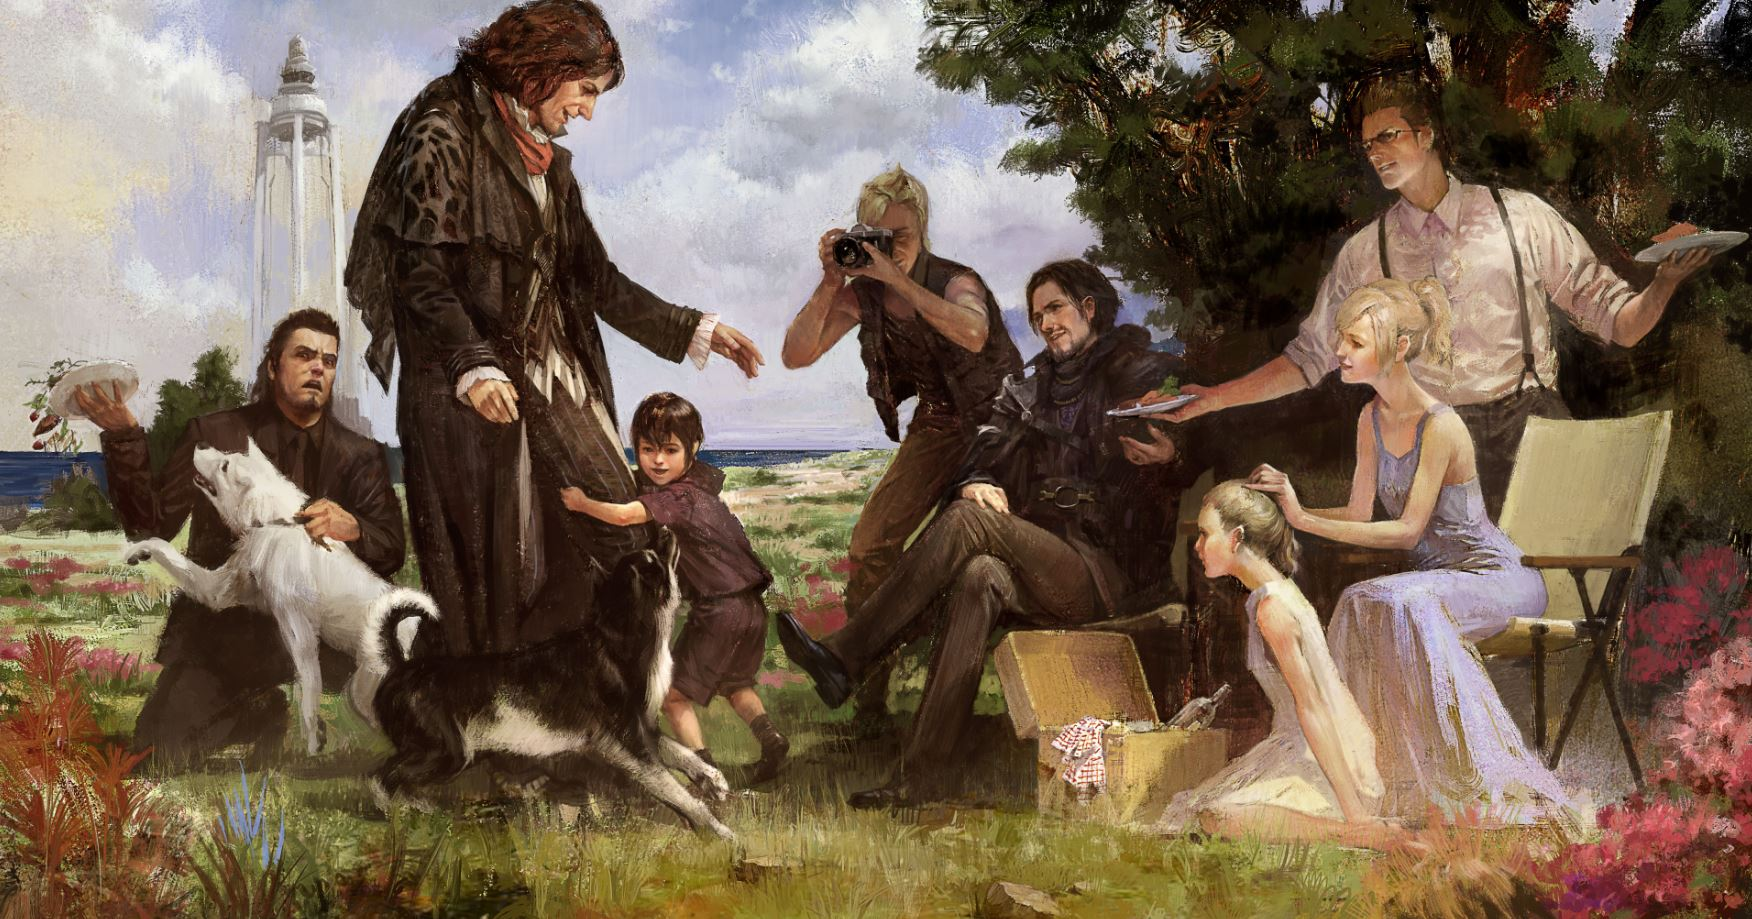 Final Fantasy XV Guide All Outfits In The Game And How To Get Them RPG Site